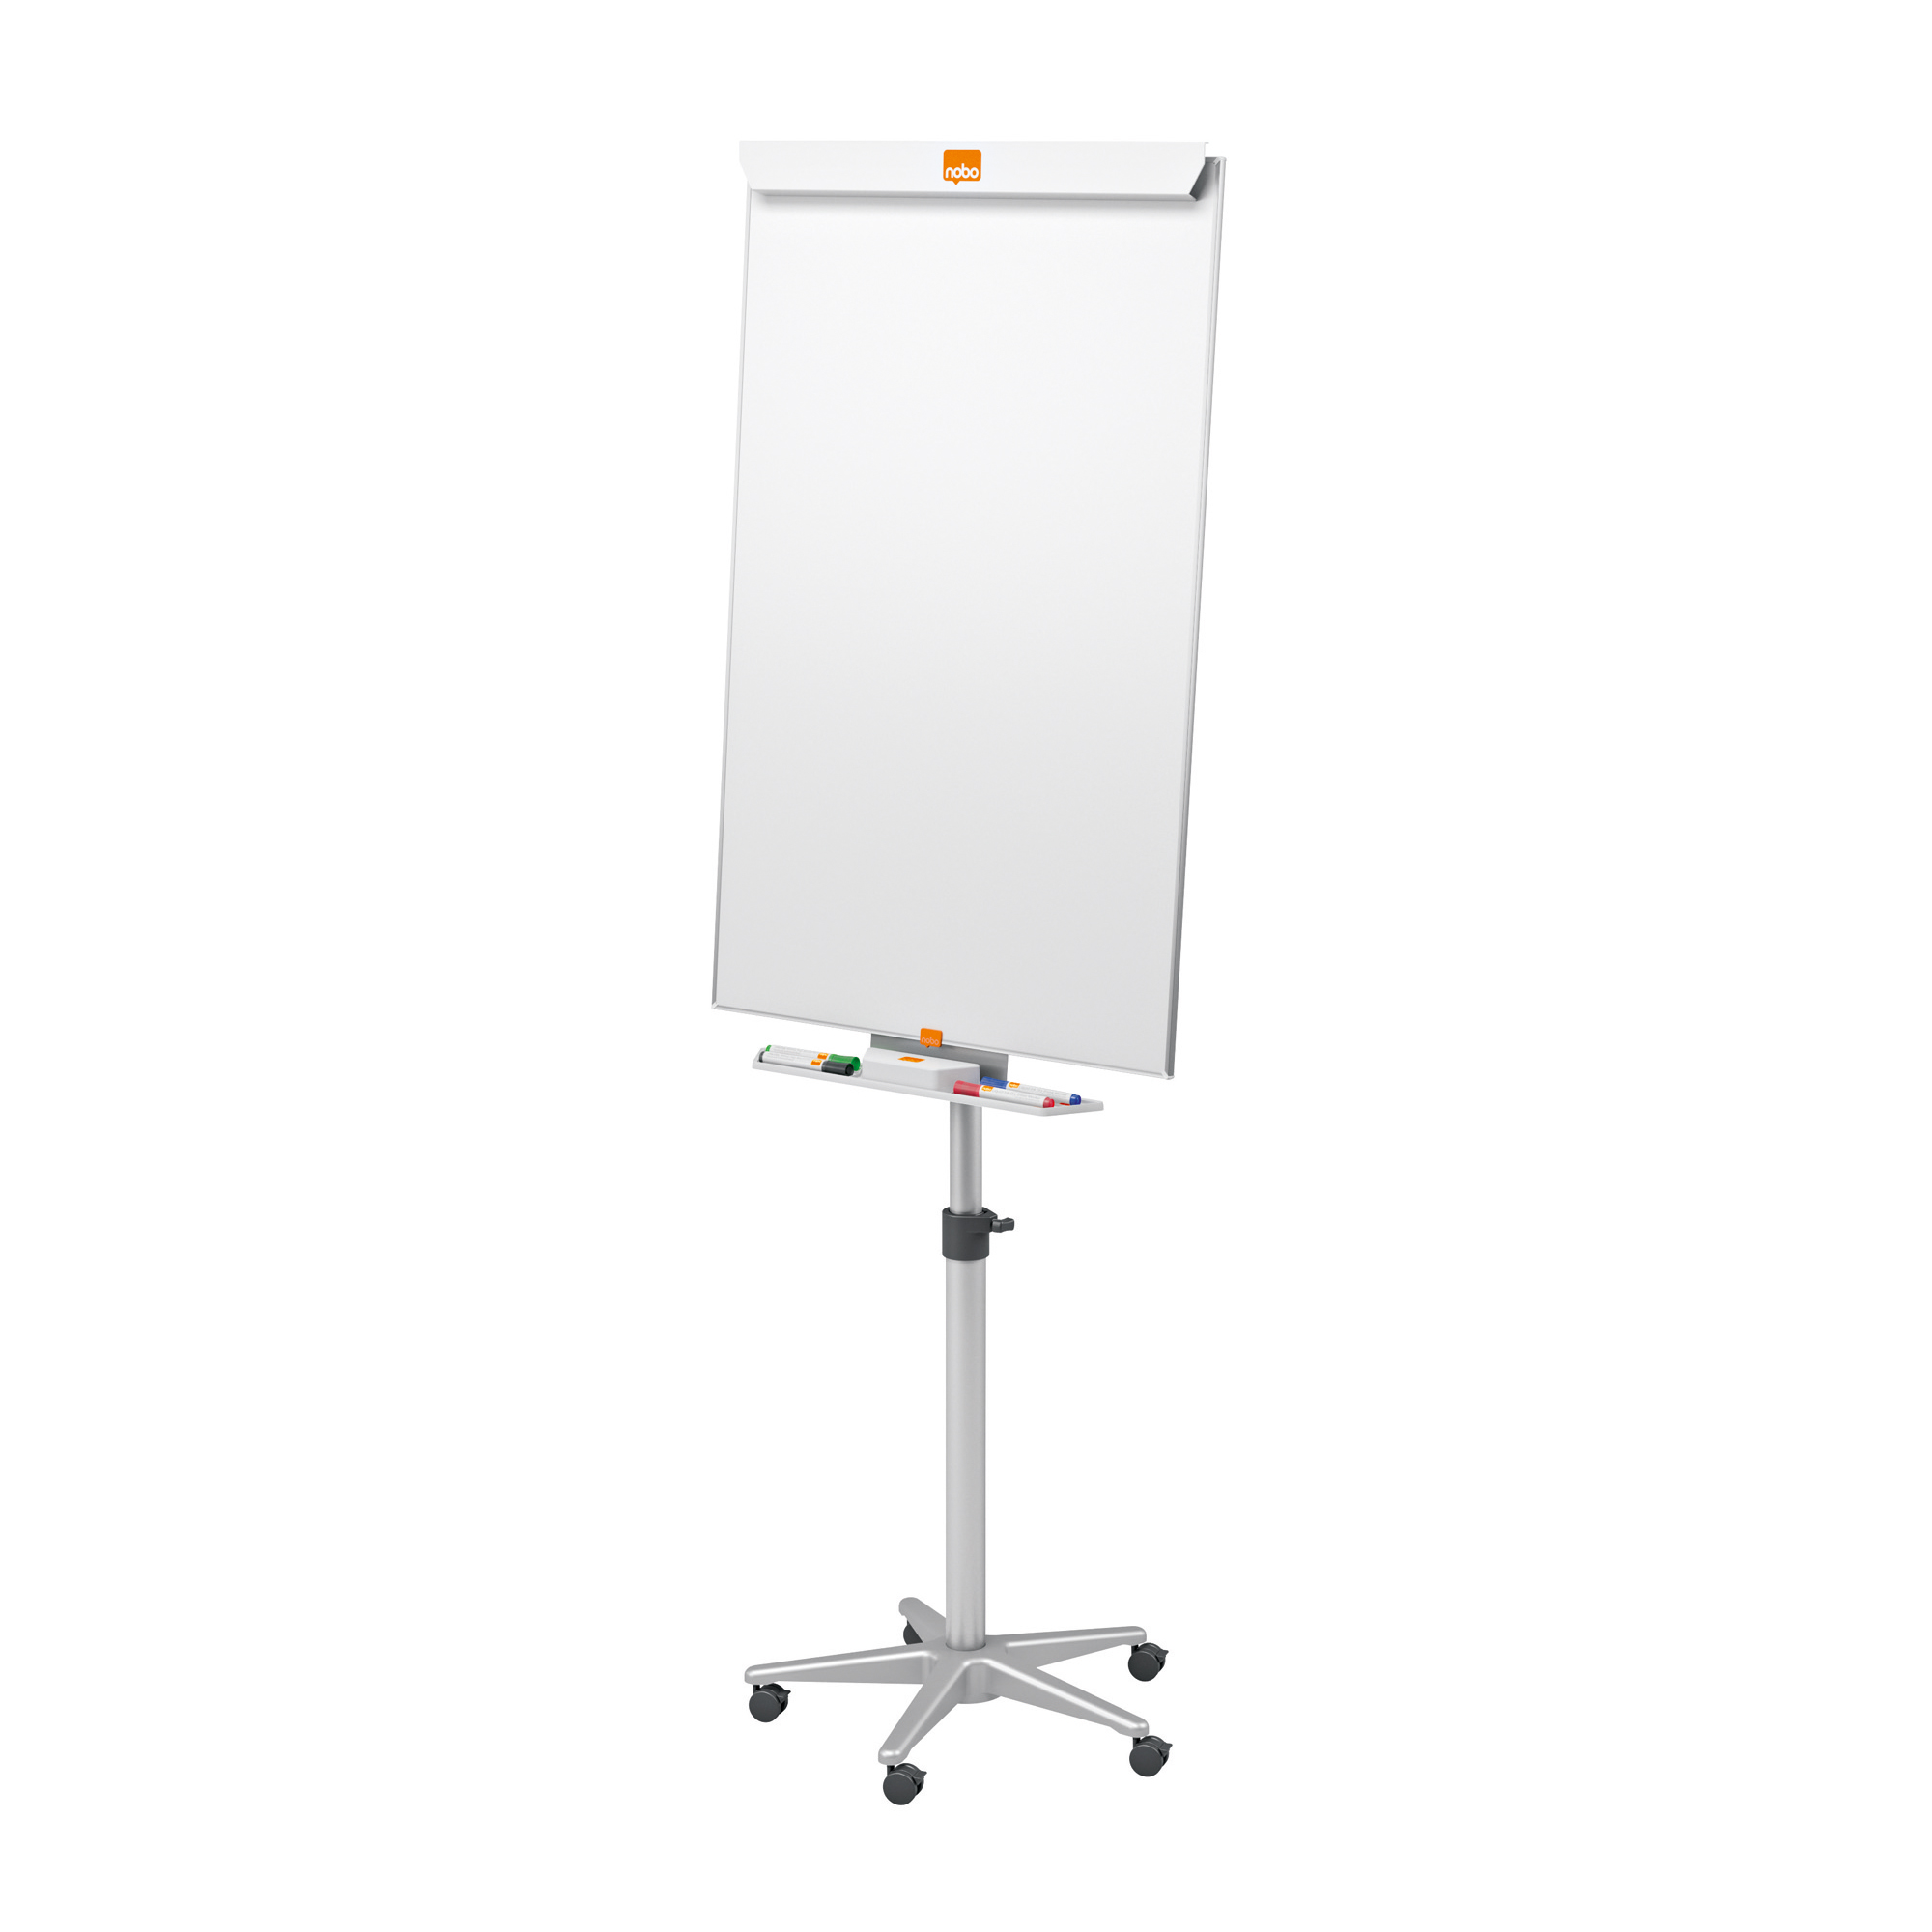 Nobo Classic Nano CleanMagnetic Mobile Easel Steel Height-adjustable 5 Castors W690xH1000mm Ref 1902386